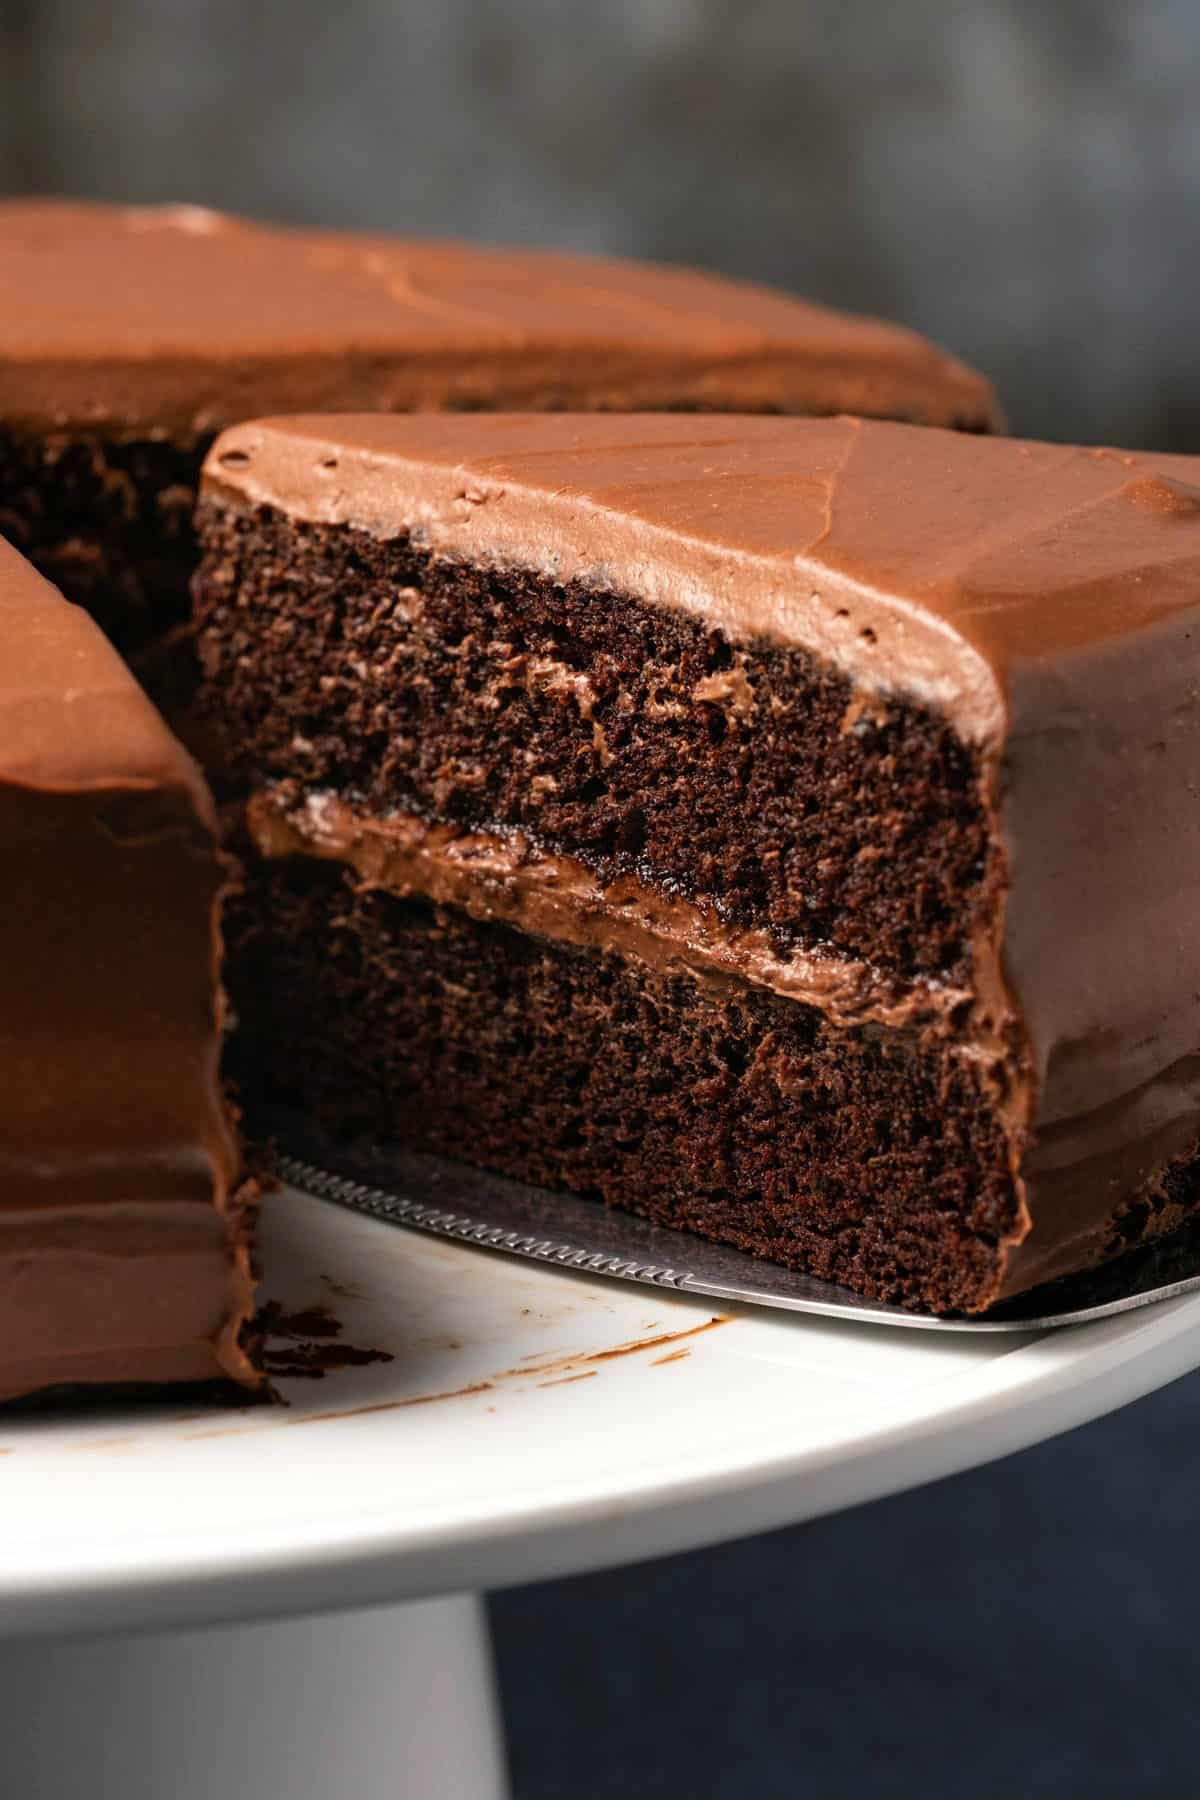 Chocolate cake on a white cake stand with one slice cut and ready to serve.